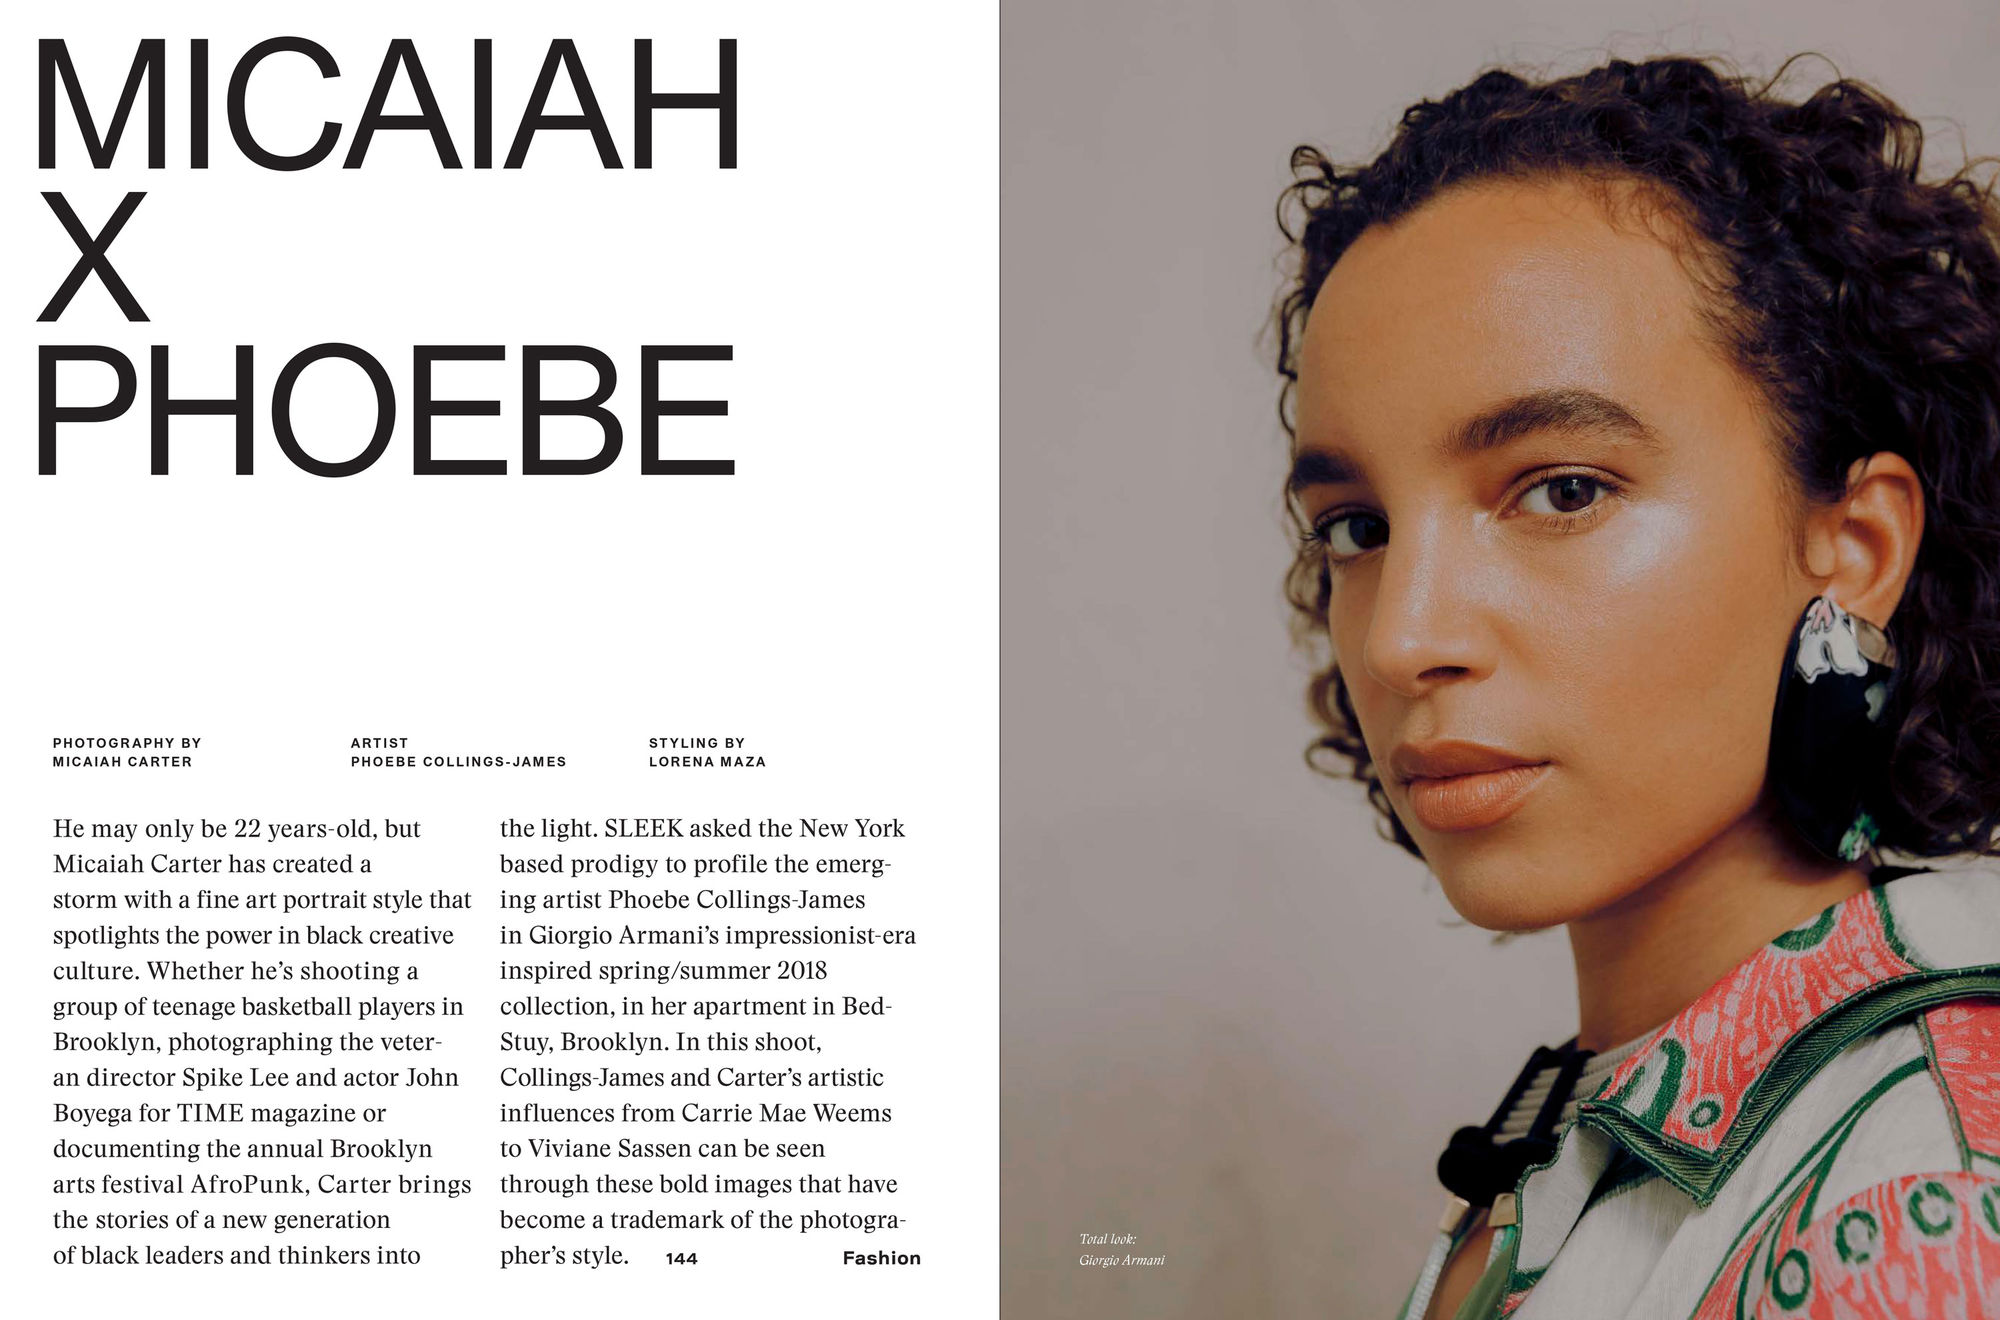 MICAIAH CARTER c/o GIANT ARTISTS photographed visual artist Phoebe Collings-James sporting the latest Giorgio Armani looks for Sleek Magazine